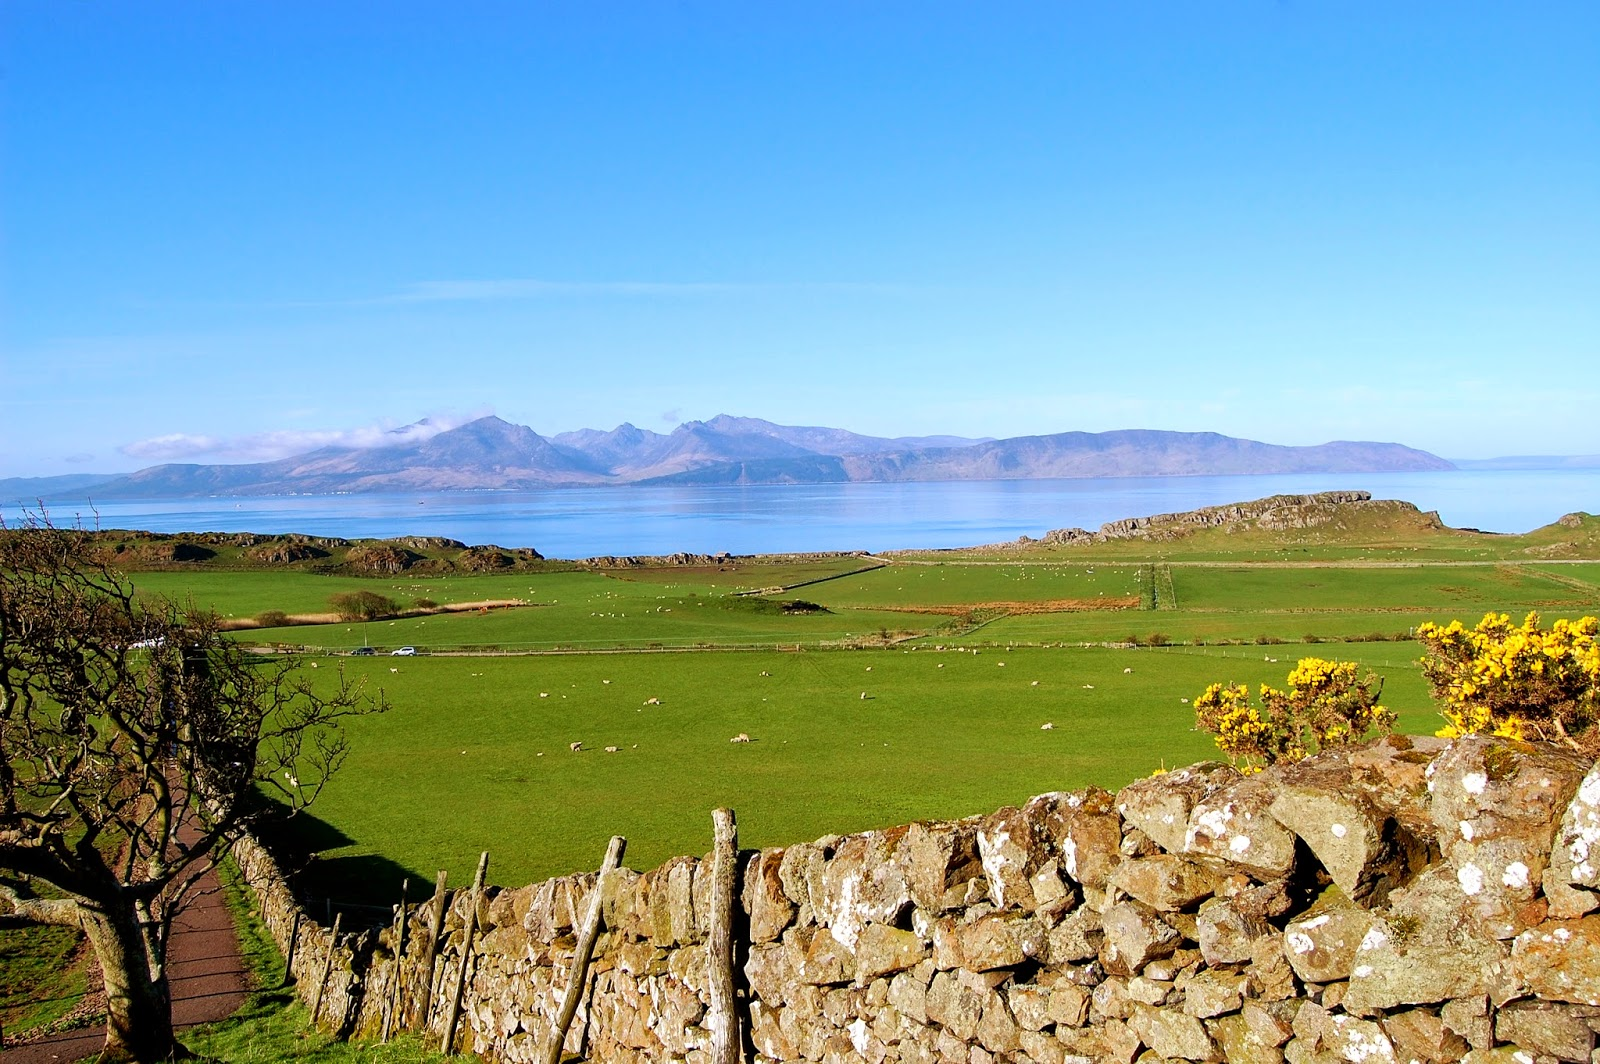 View of Goatfell and Isle of Arran from St. Blane's Church, Isle of Bute